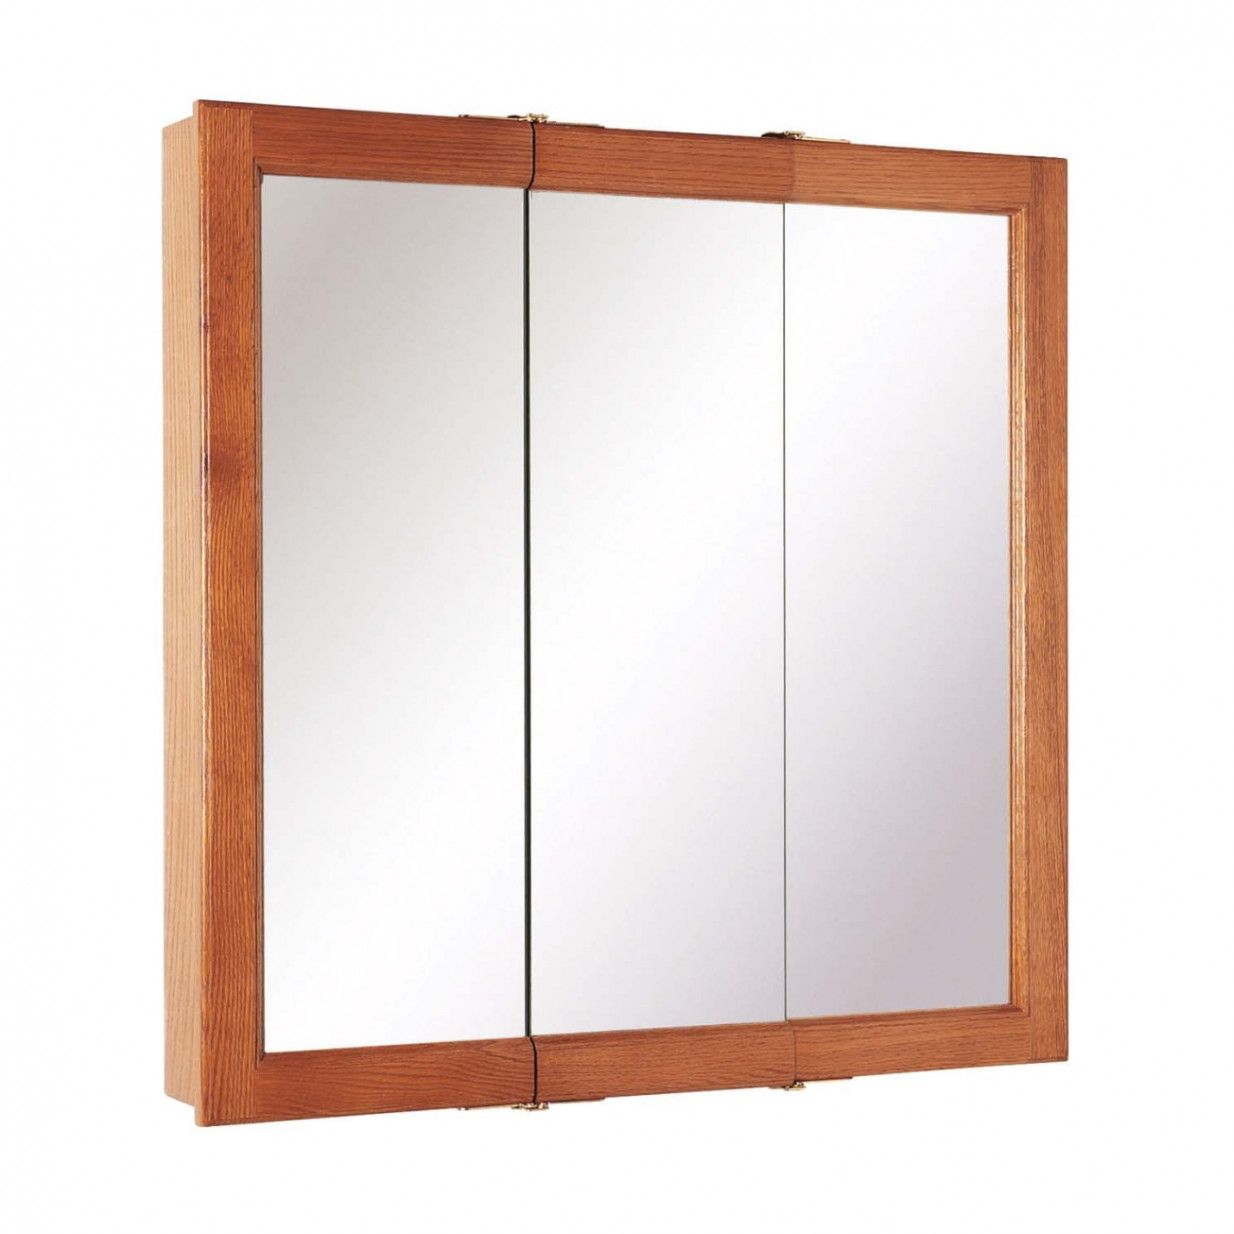 55+ Replacement Mirror For Bathroom Medicine Cabinet   Lowes Paint Colors  Interior Check More At